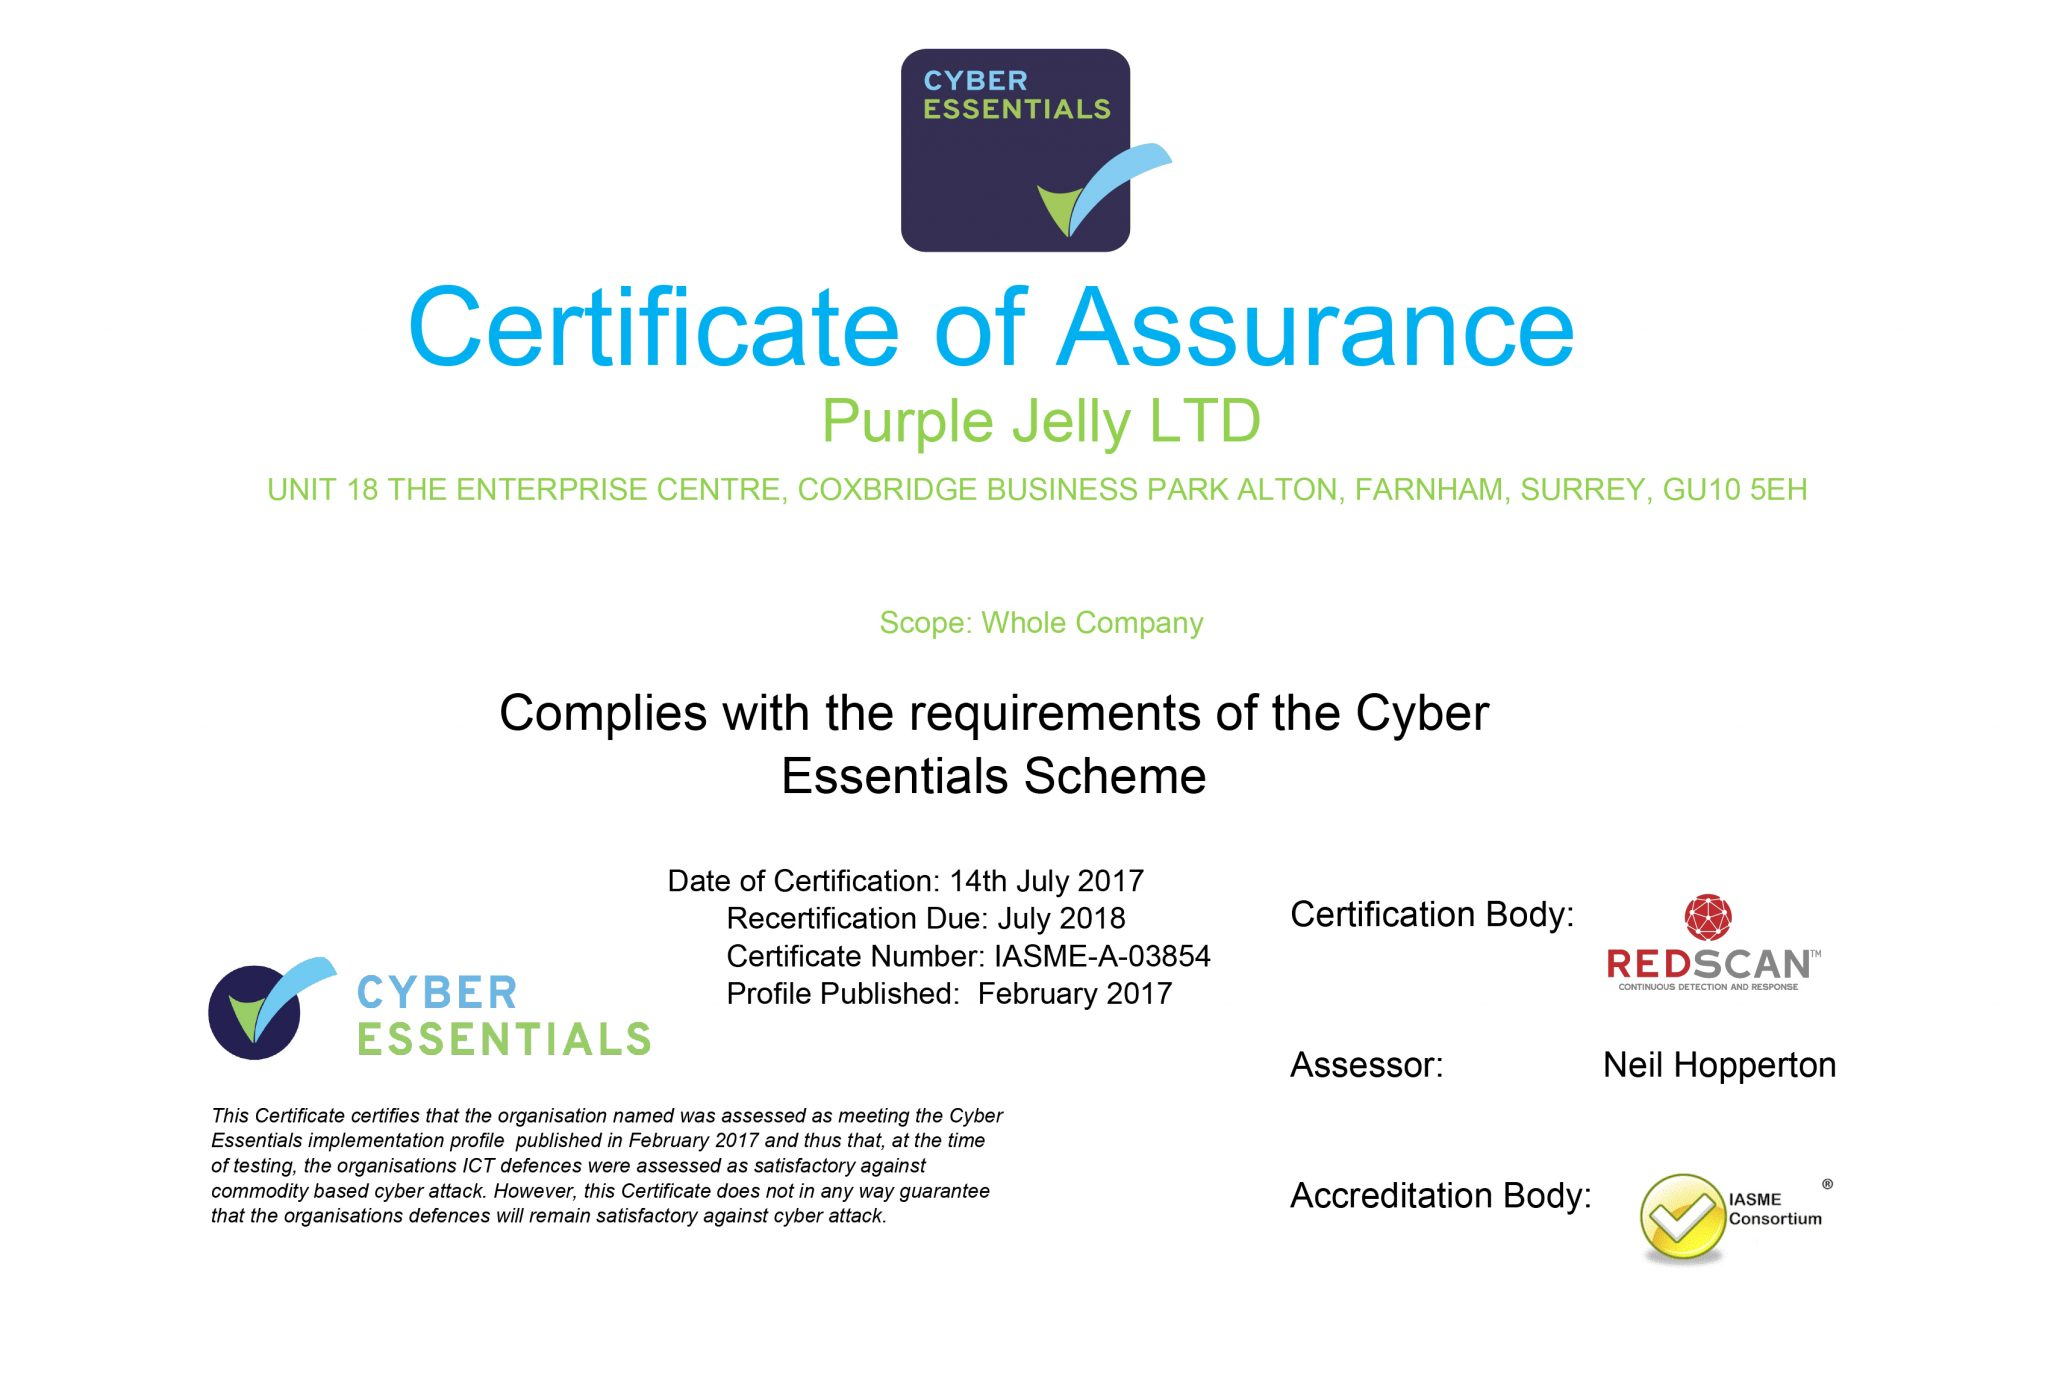 PurpleJelly IT Support Farnham | Cyber Essentials Accreditation